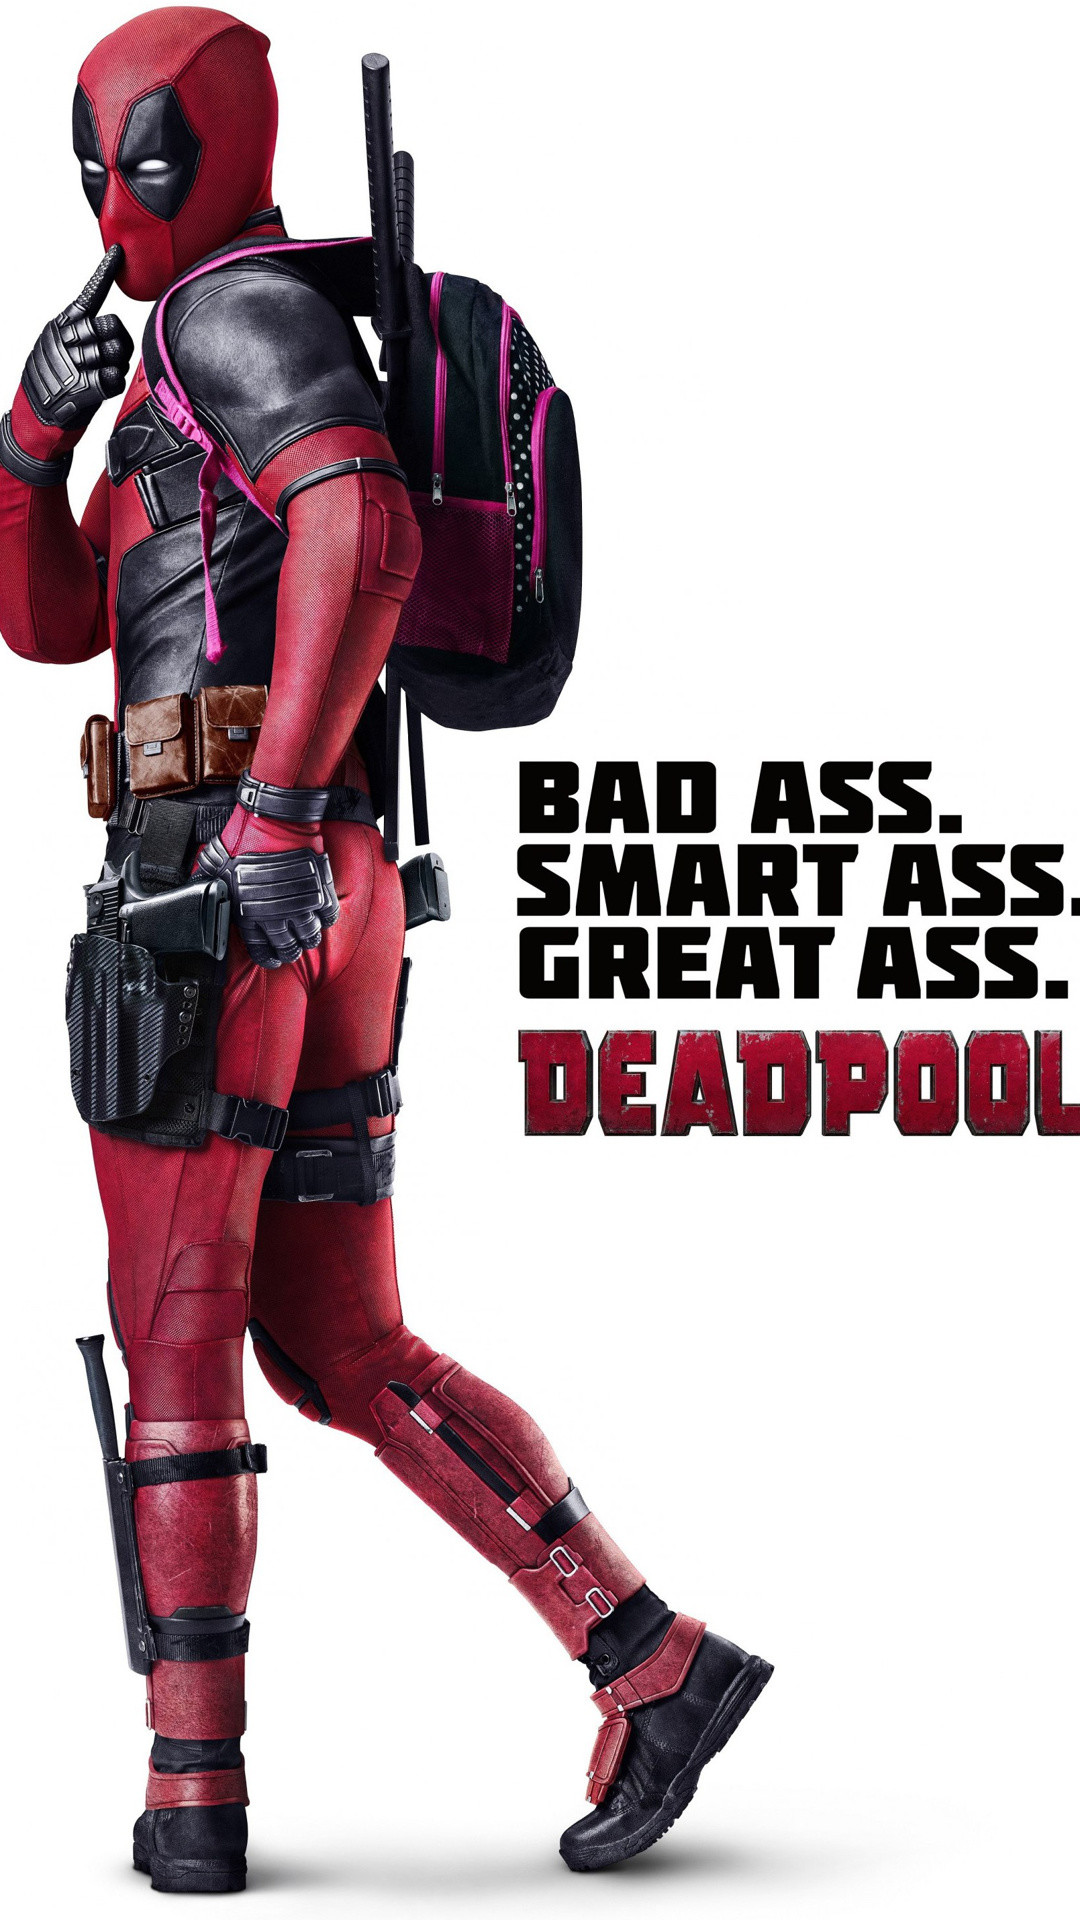 Funny deadpool wallpaper iphone 68 images 1080x1920 deadpool the movie iphone 6 plus wallpaper 1080x1920 voltagebd Gallery